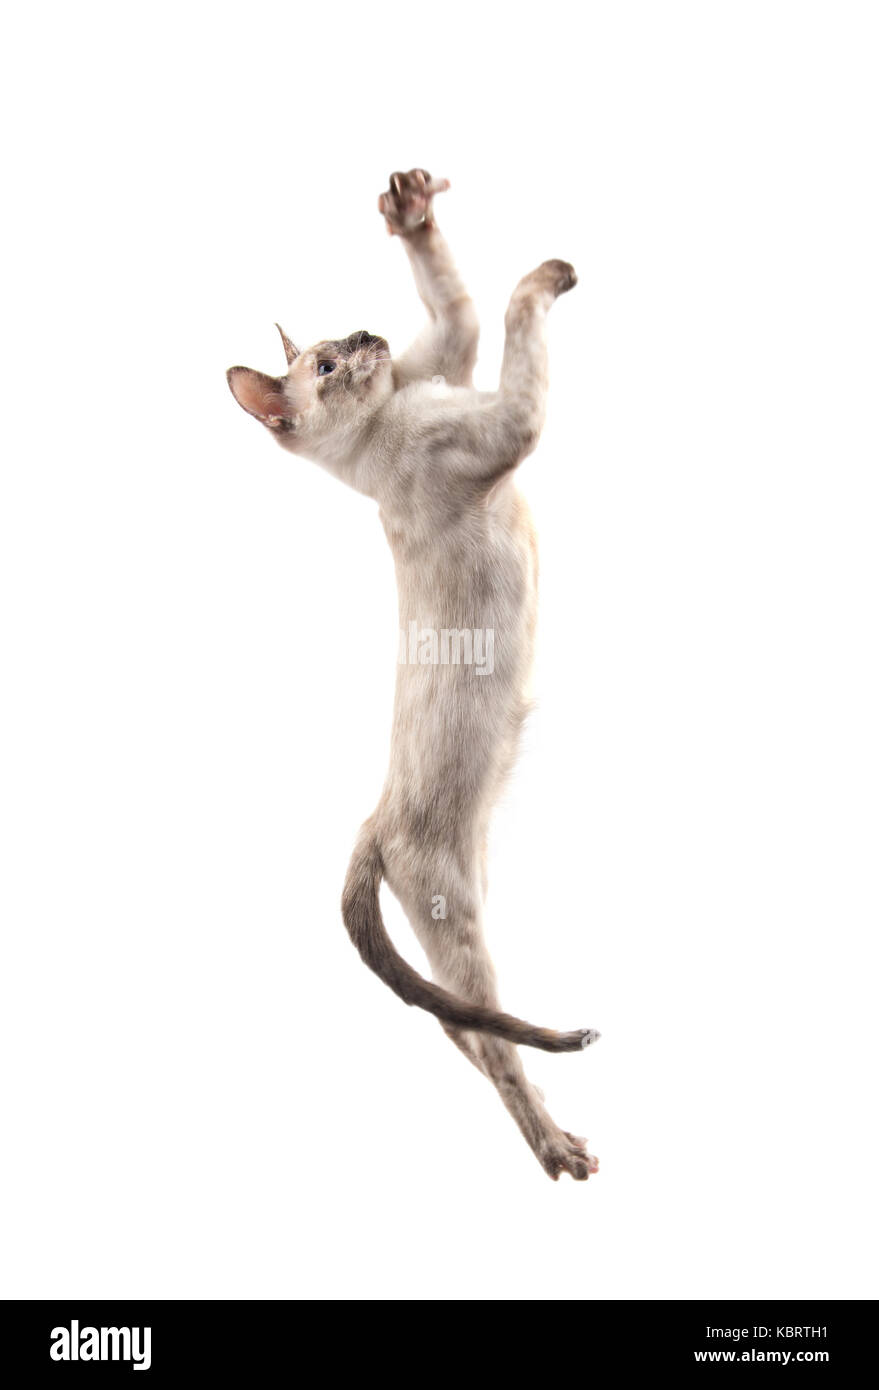 Siamese kitten leaping up high swatting with her paws, on white - Stock Image